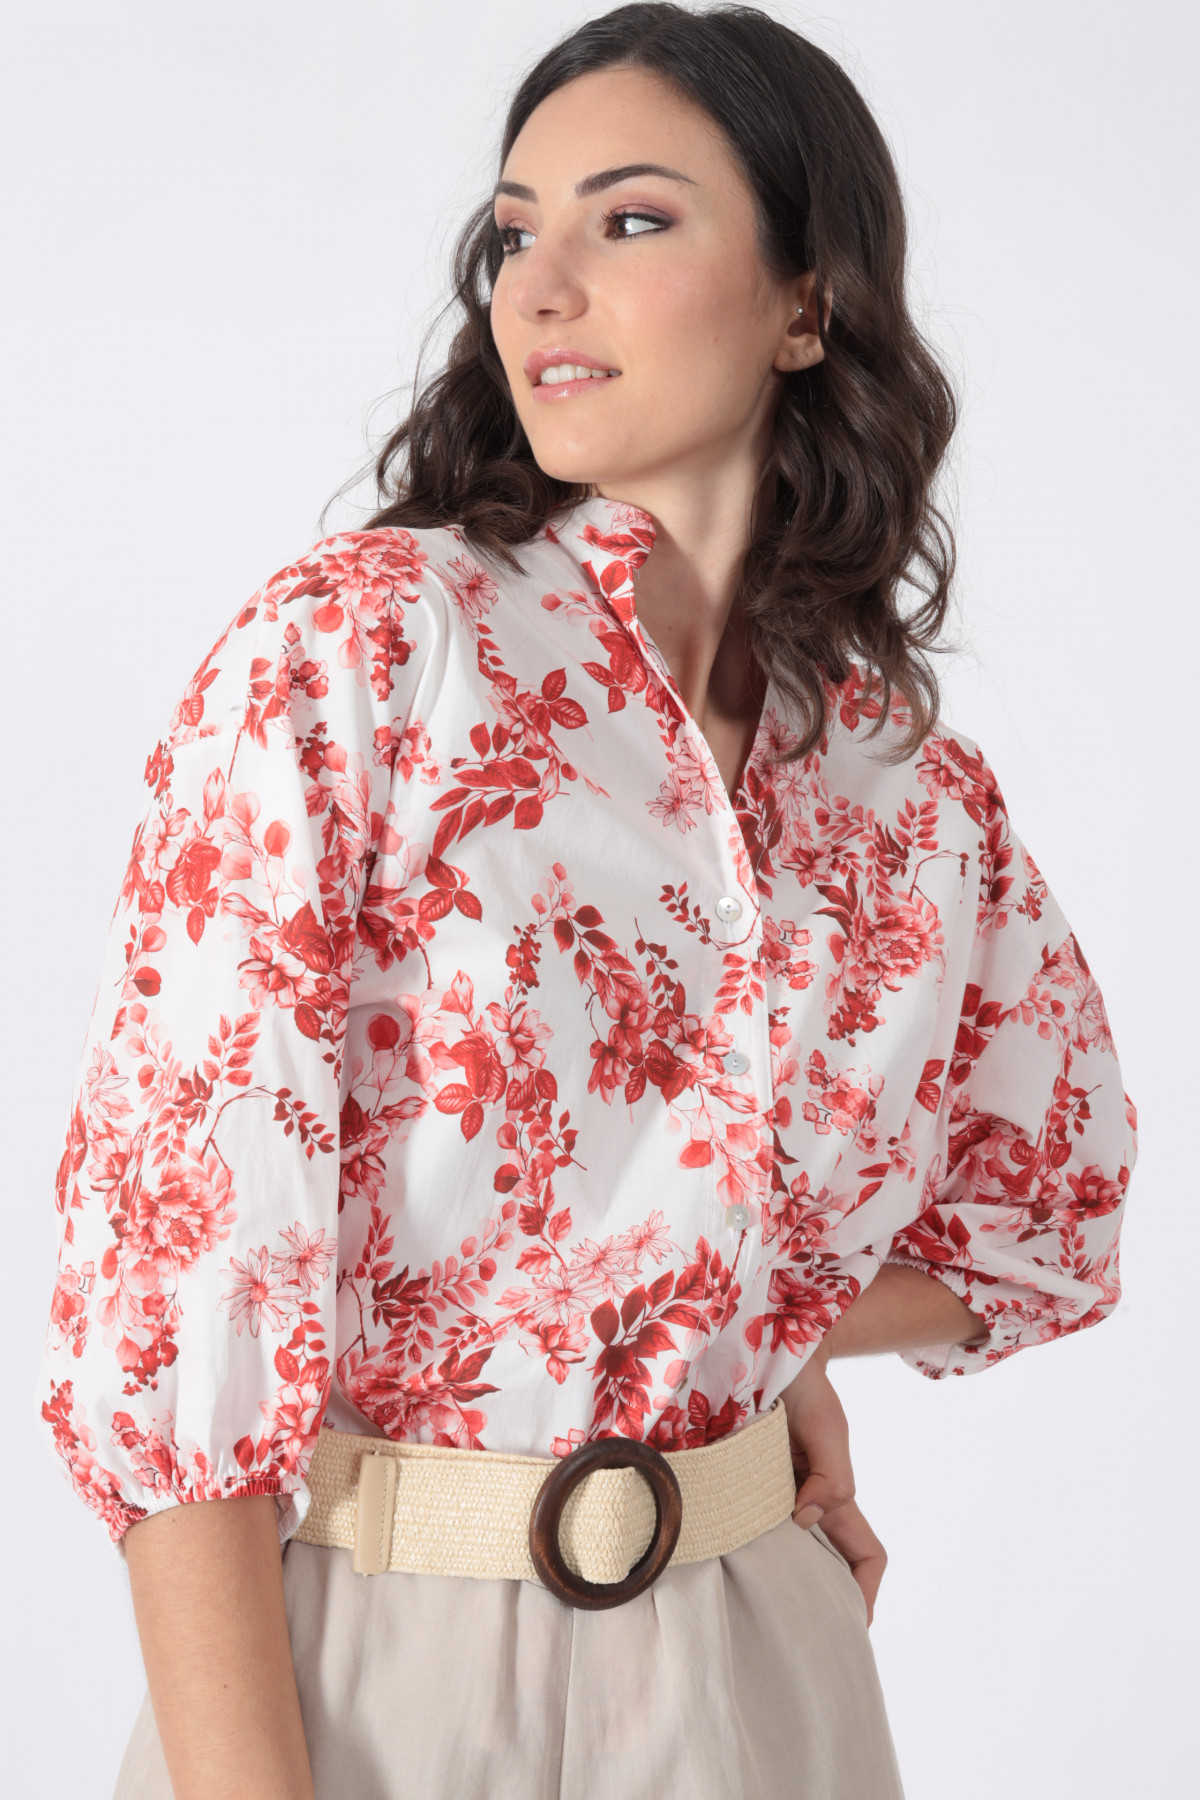 Floral Fantasy Print Shirt with Puff Sleeves